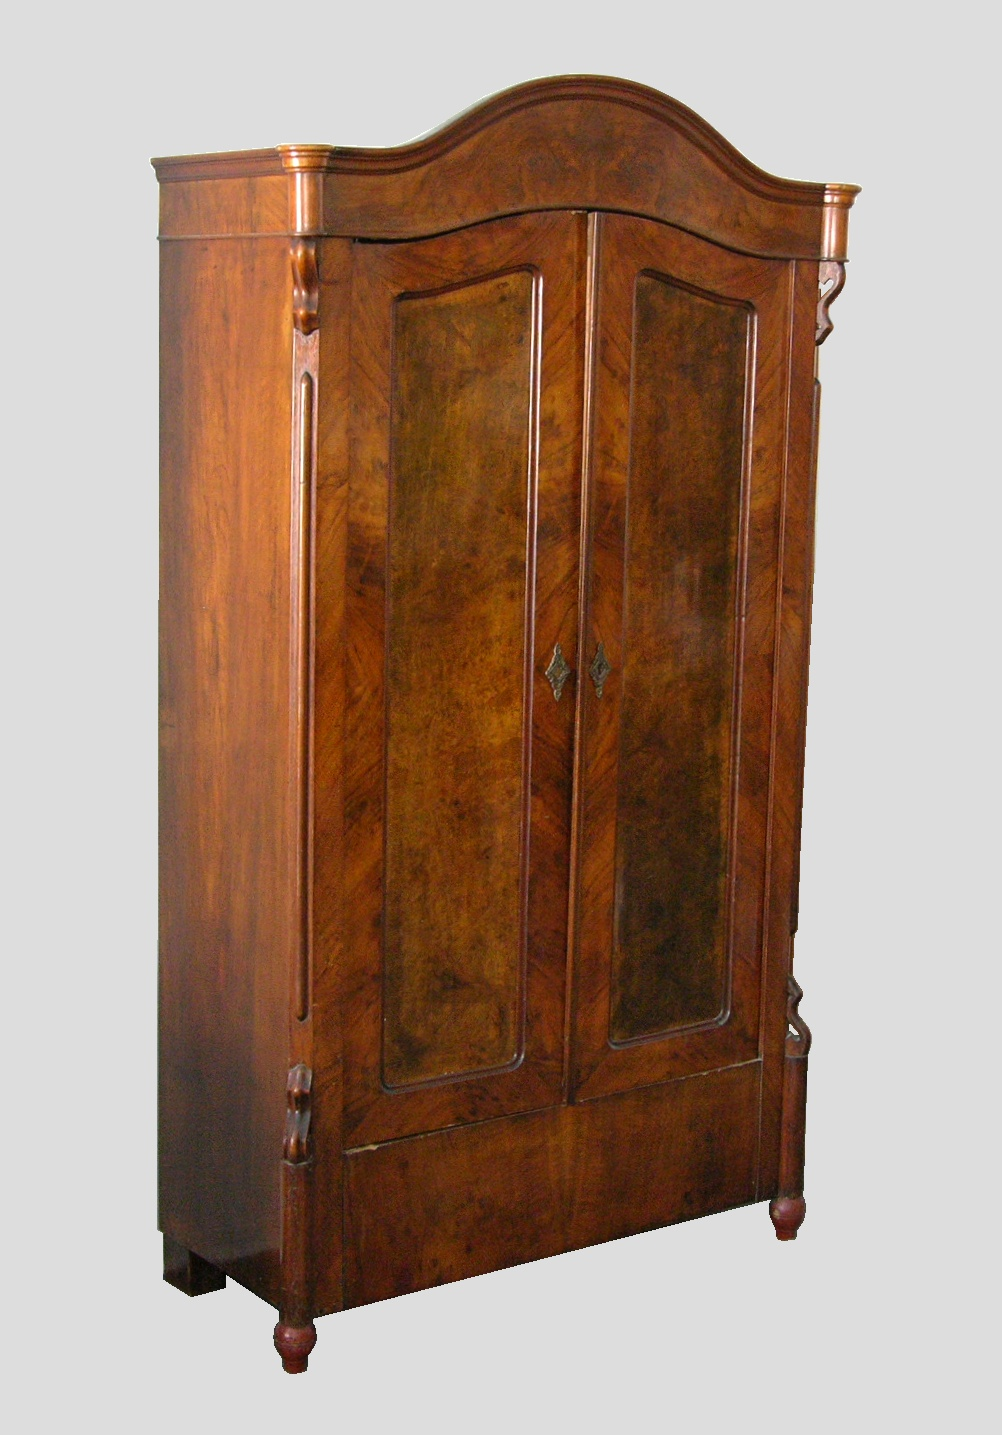 Lovely A Small Antique Armoire/Wardrobe